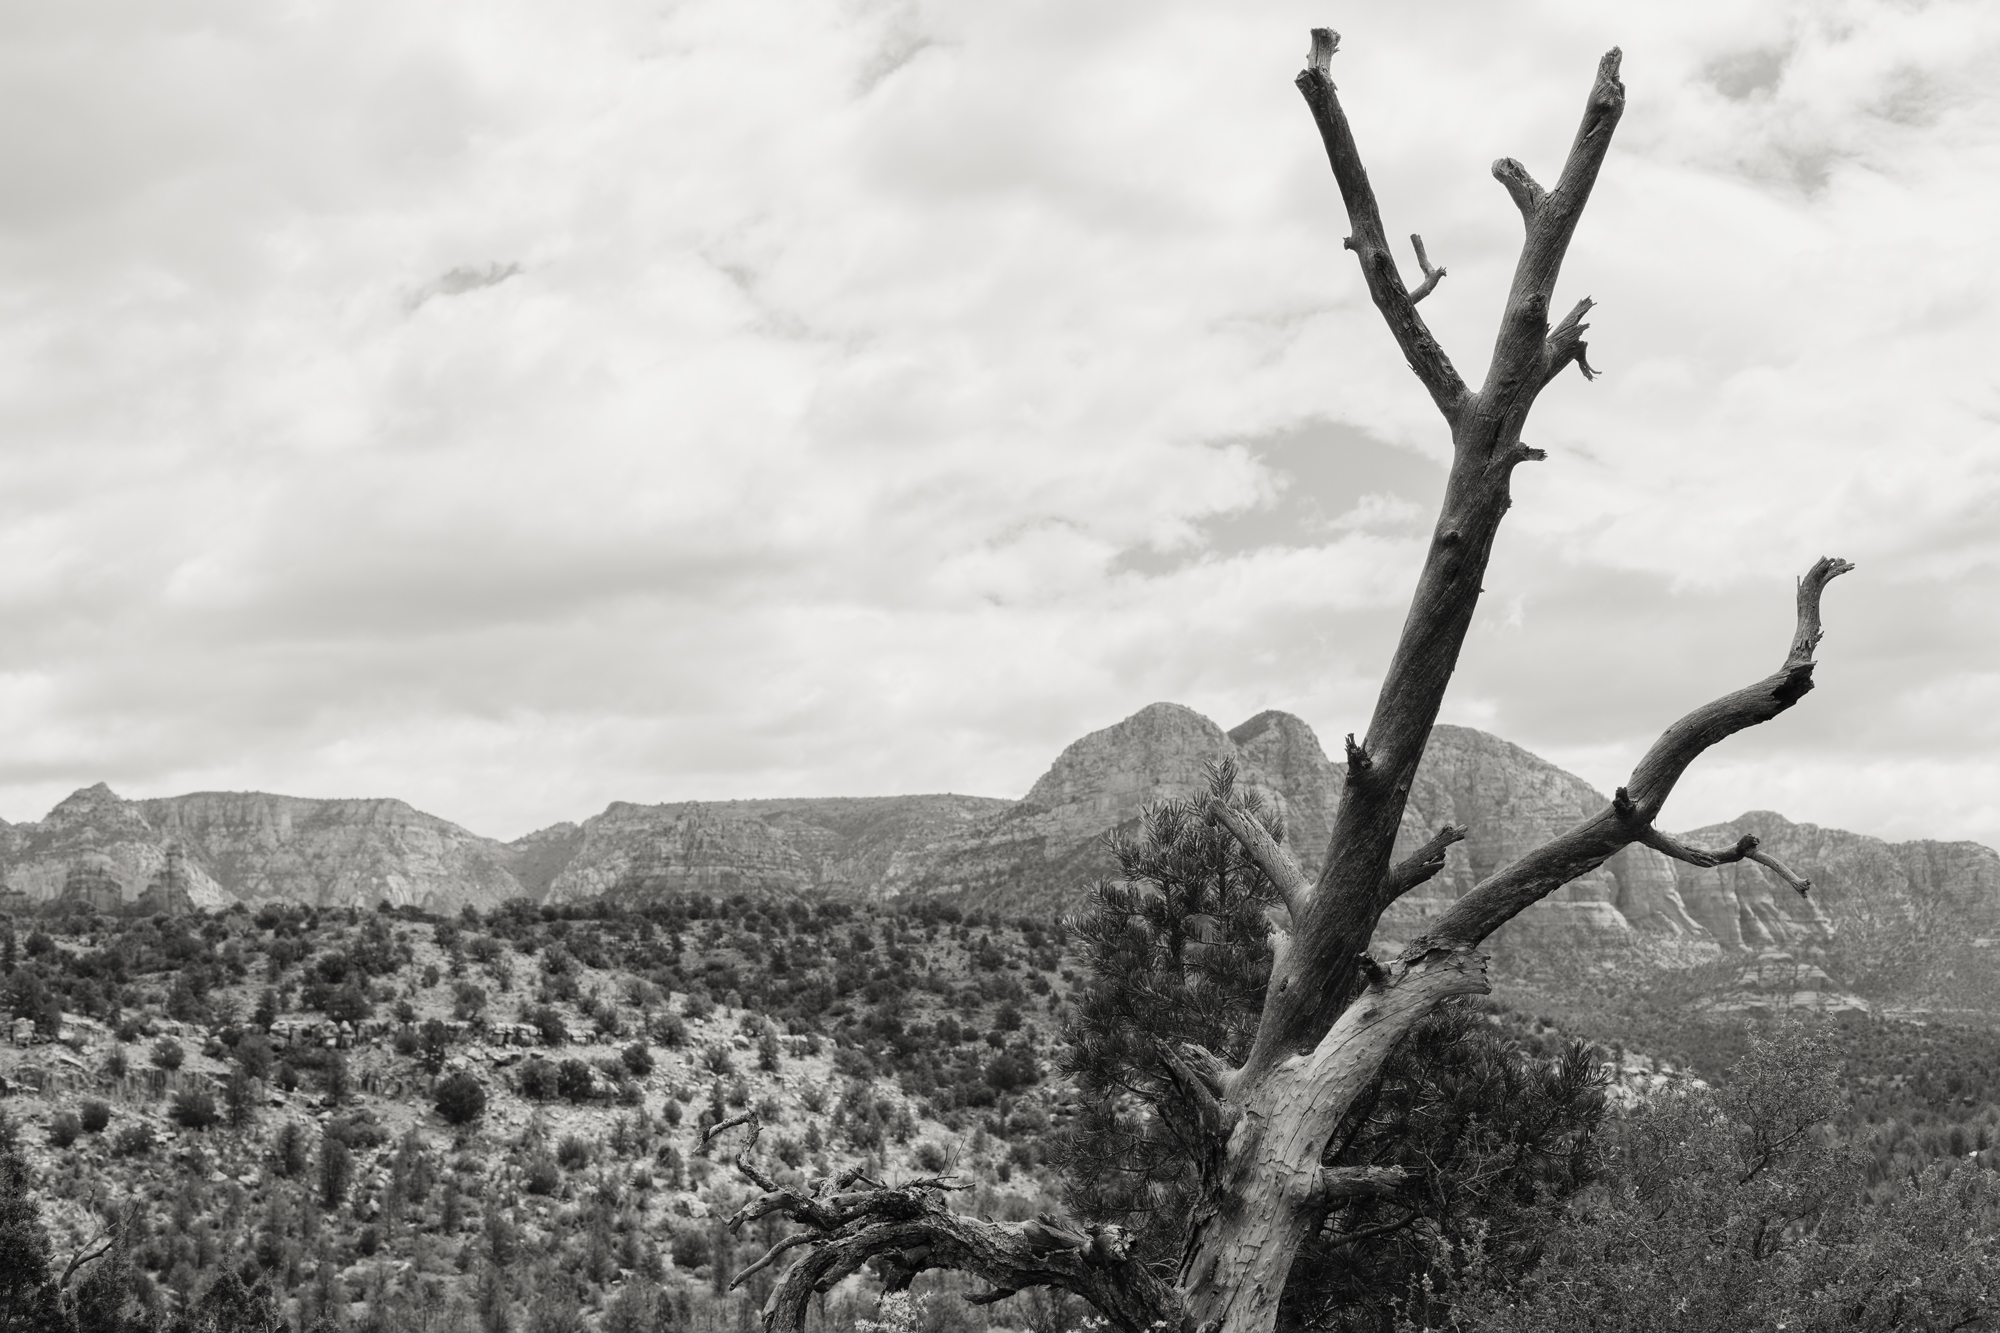 Sedona, Arizona - Memphis Photographer - Arizona Photographer - Landscape Photographer - Fine Art Photographer - K. Stoddard Photography & Fine Art 02.jpg